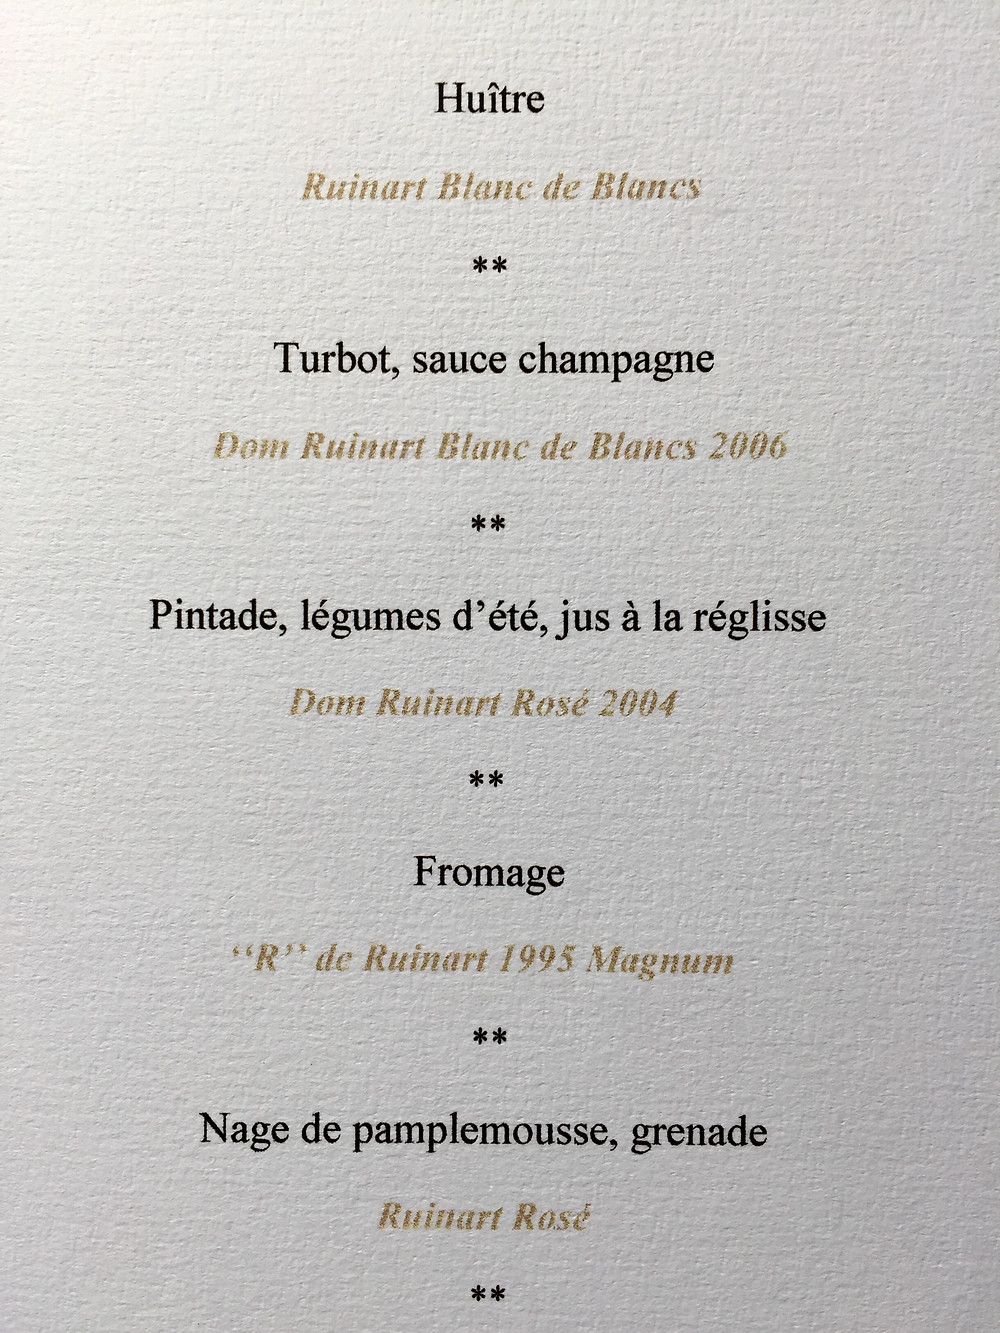 Lunch at Champagne Ruinart, Reims